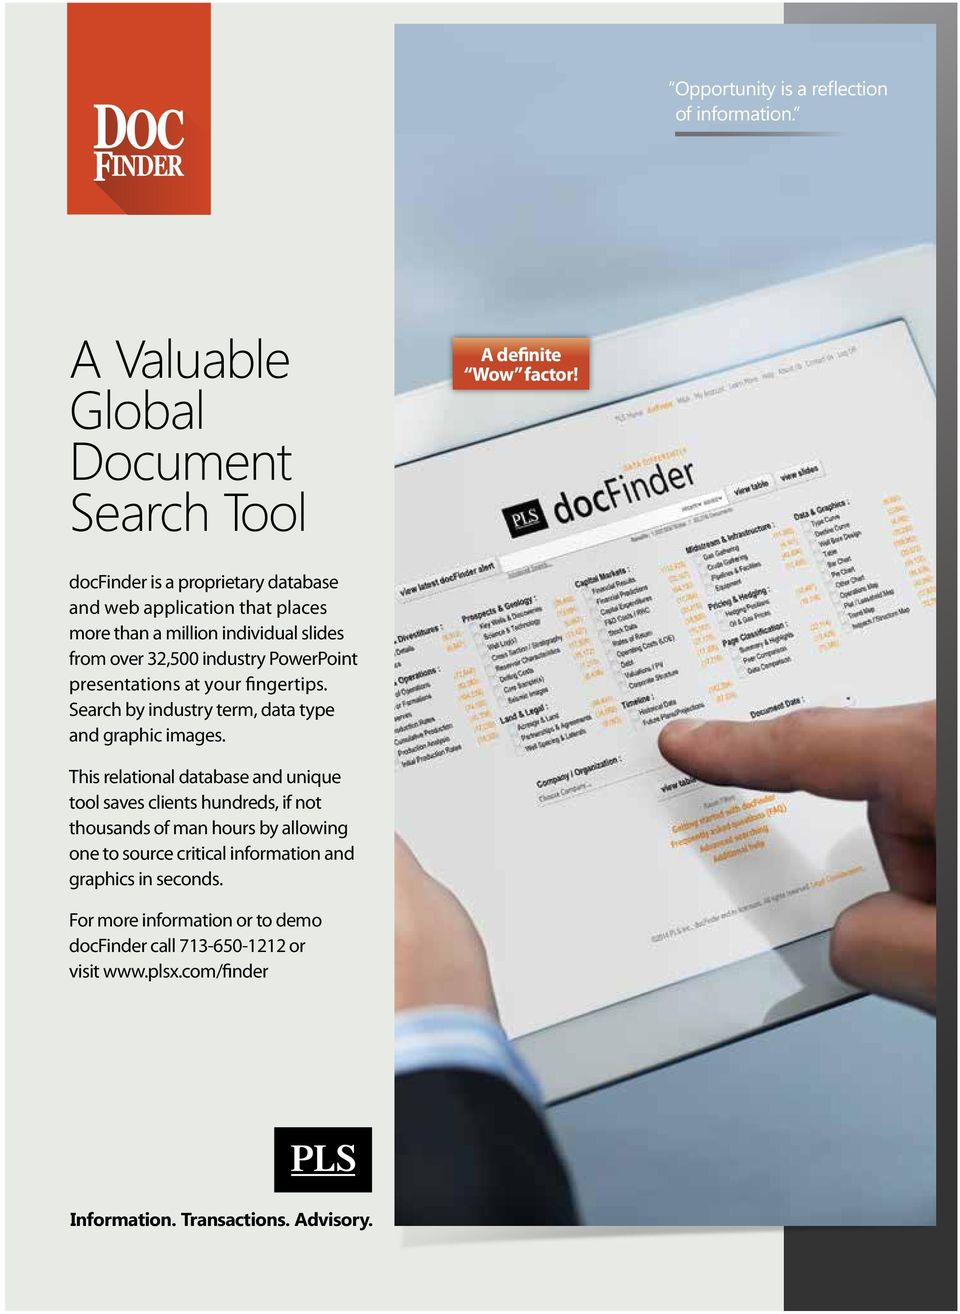 at your fingertips. Search by industry term, data type and graphic images.